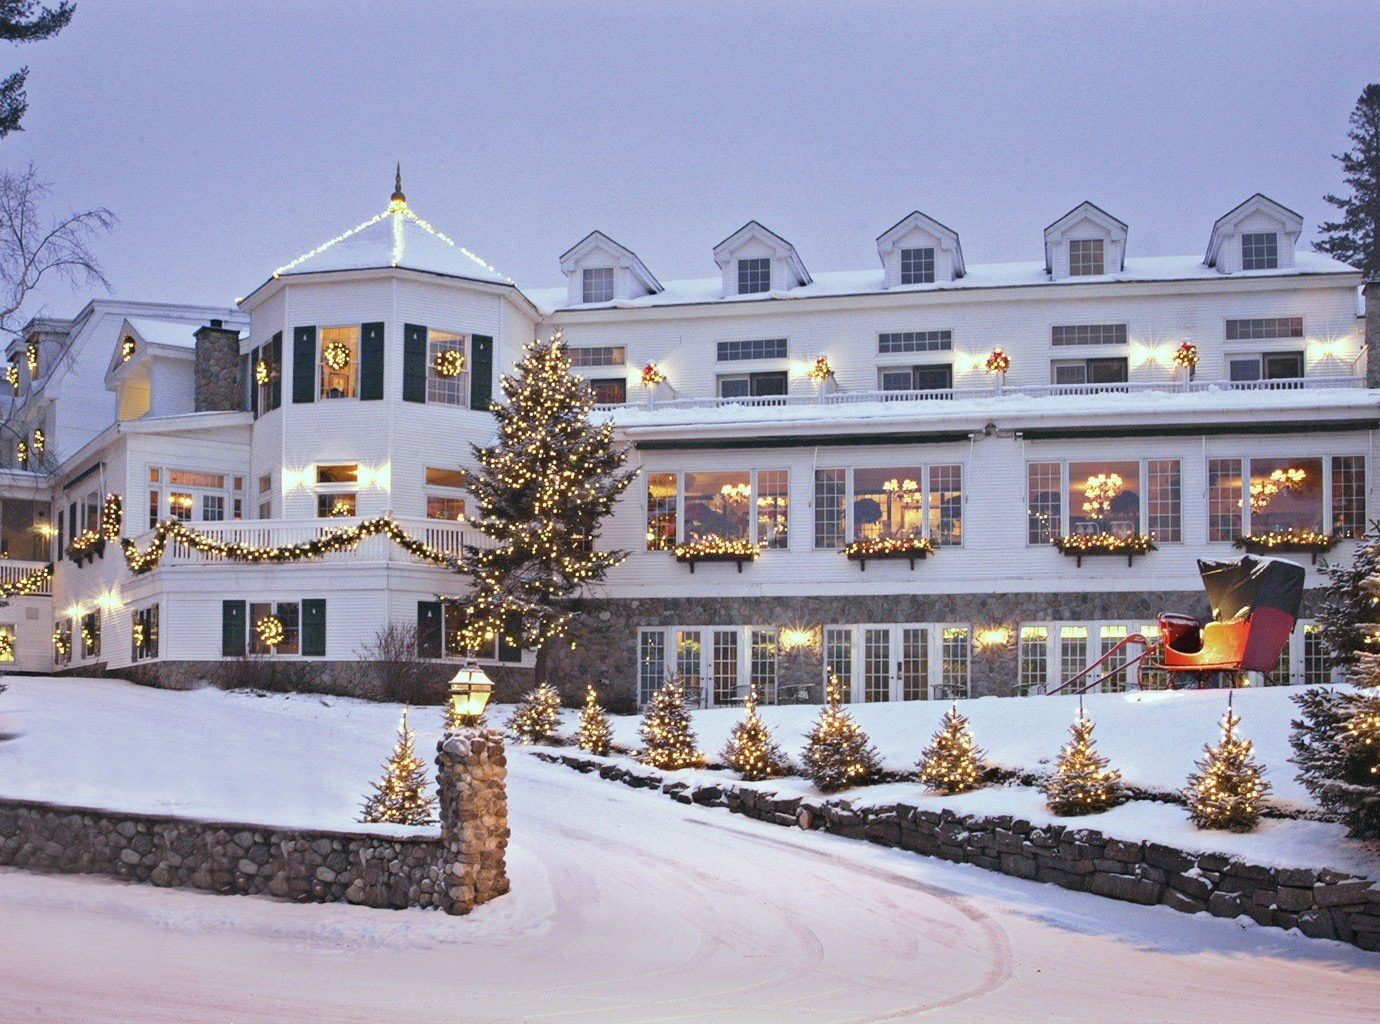 Trip Ideas sky outdoor snow Winter house estate home palace Resort Christmas ice rink